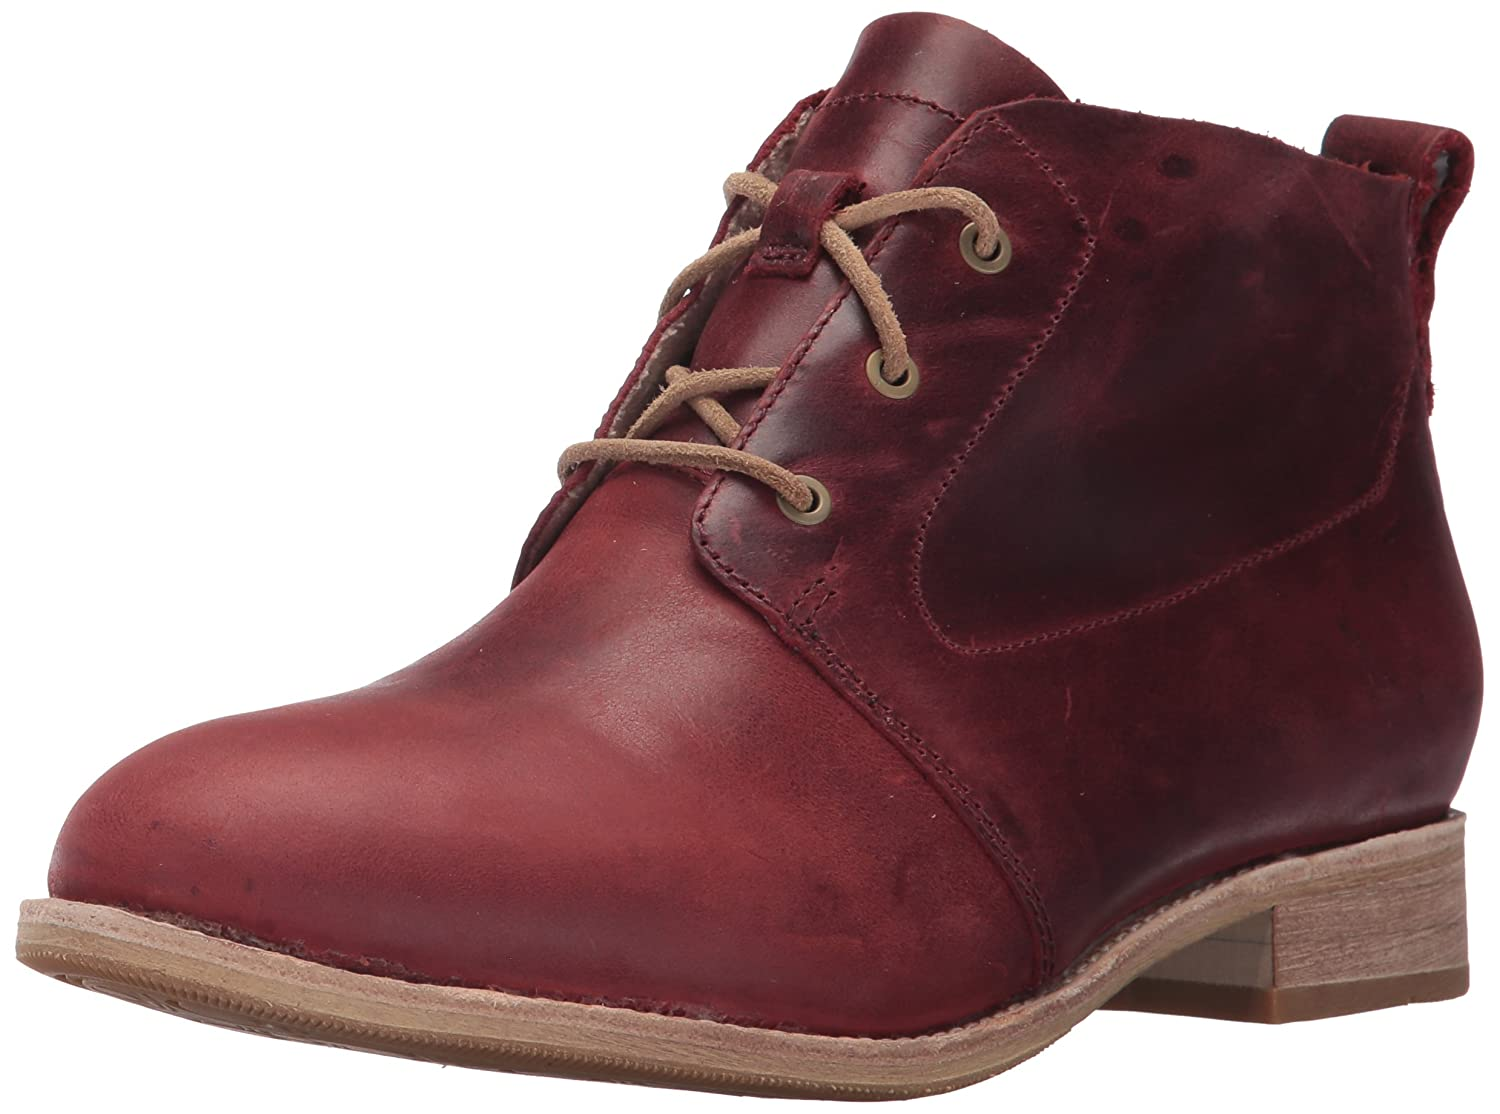 Caterpillar Women's Hester 3 Eyelet Leather Chukka Bootie Ankle Boot B01N7HXIK9 10 B(M) US|Sedona